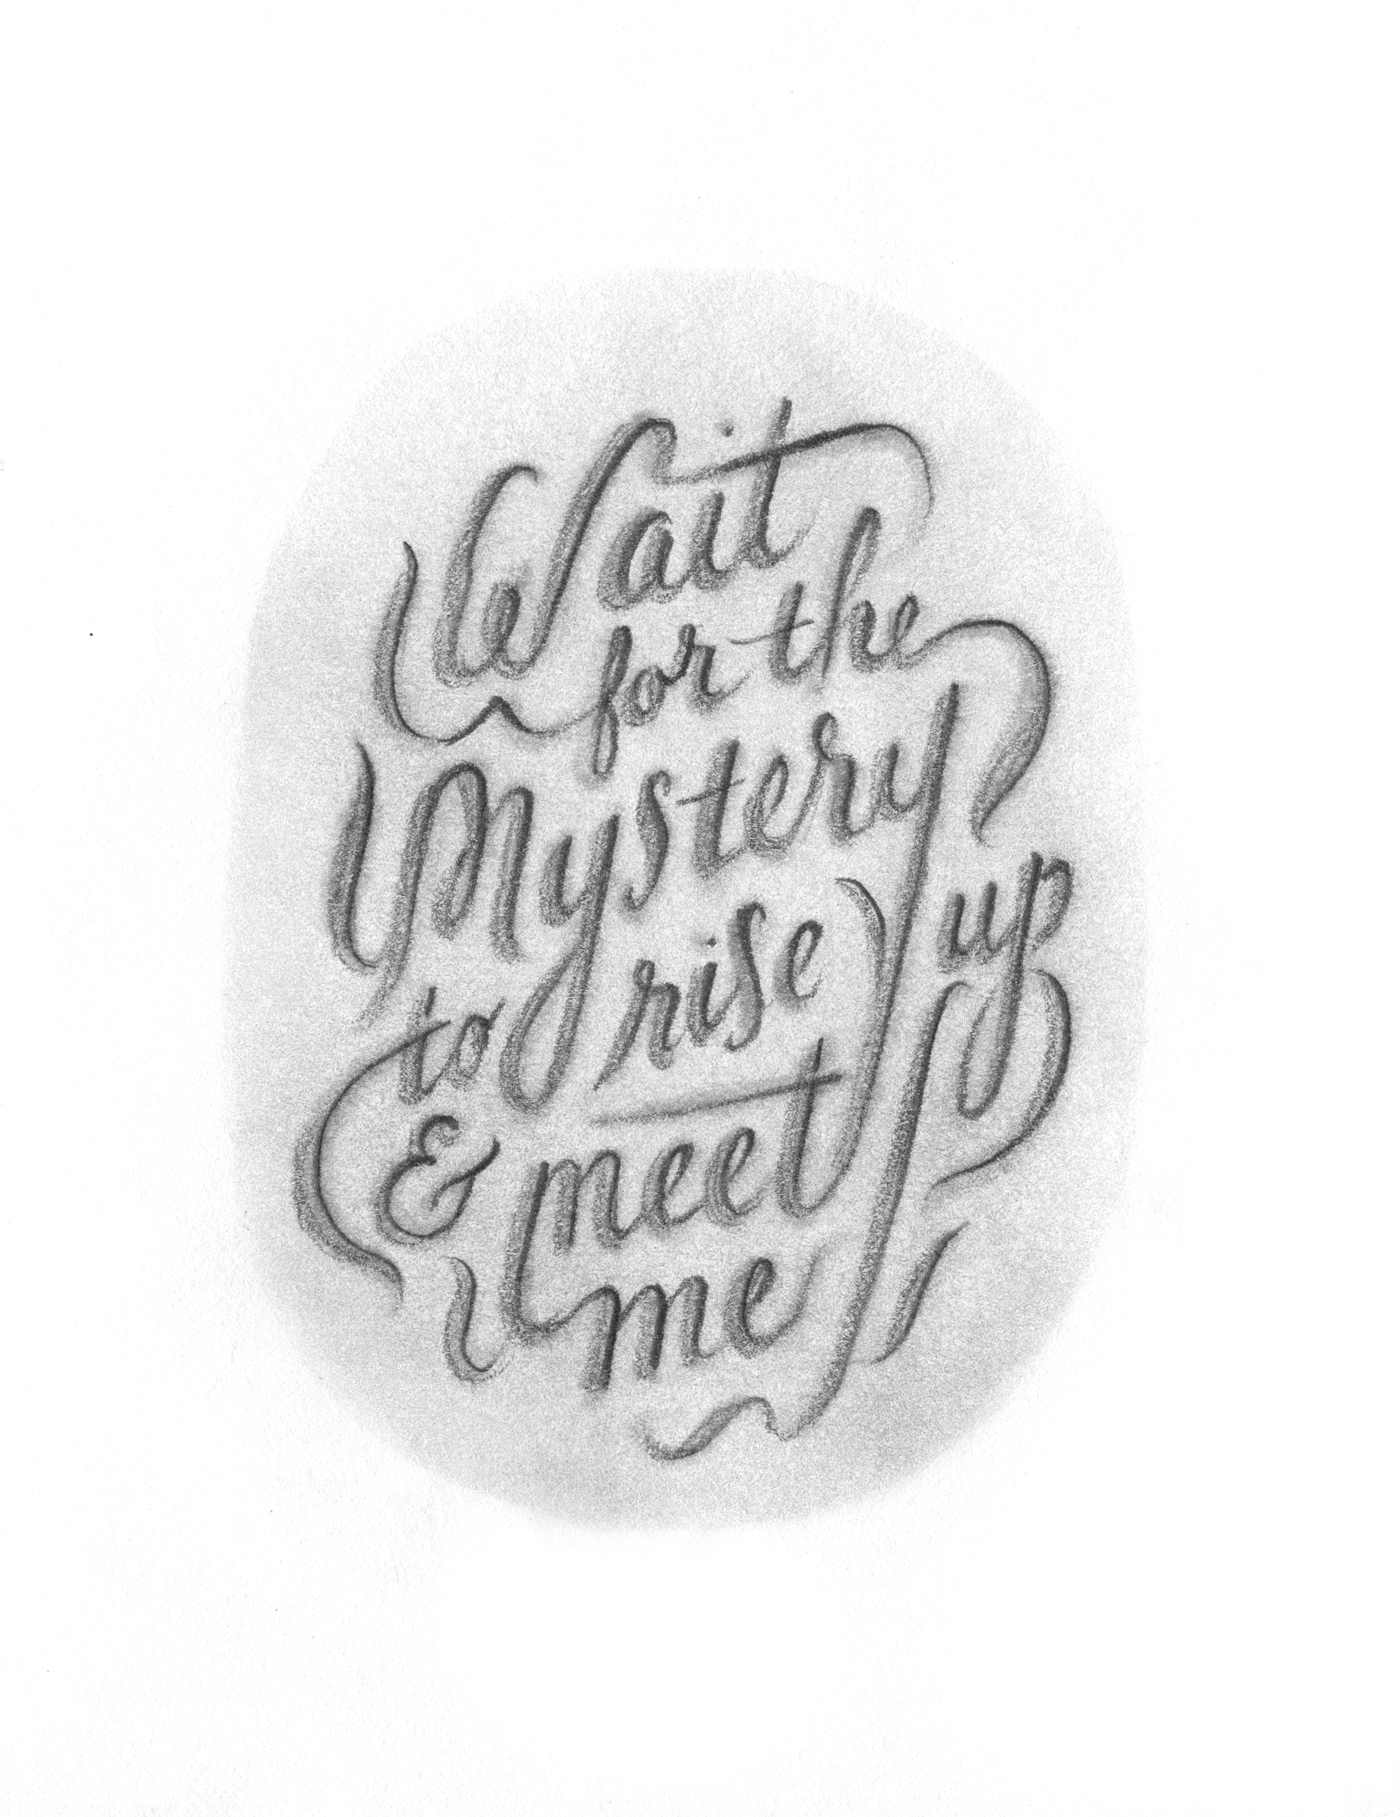 """Wait for the mystery to rise up and meet me."" illustrated lettering by Laura Dreyer. Lyrics by Sara Groves."